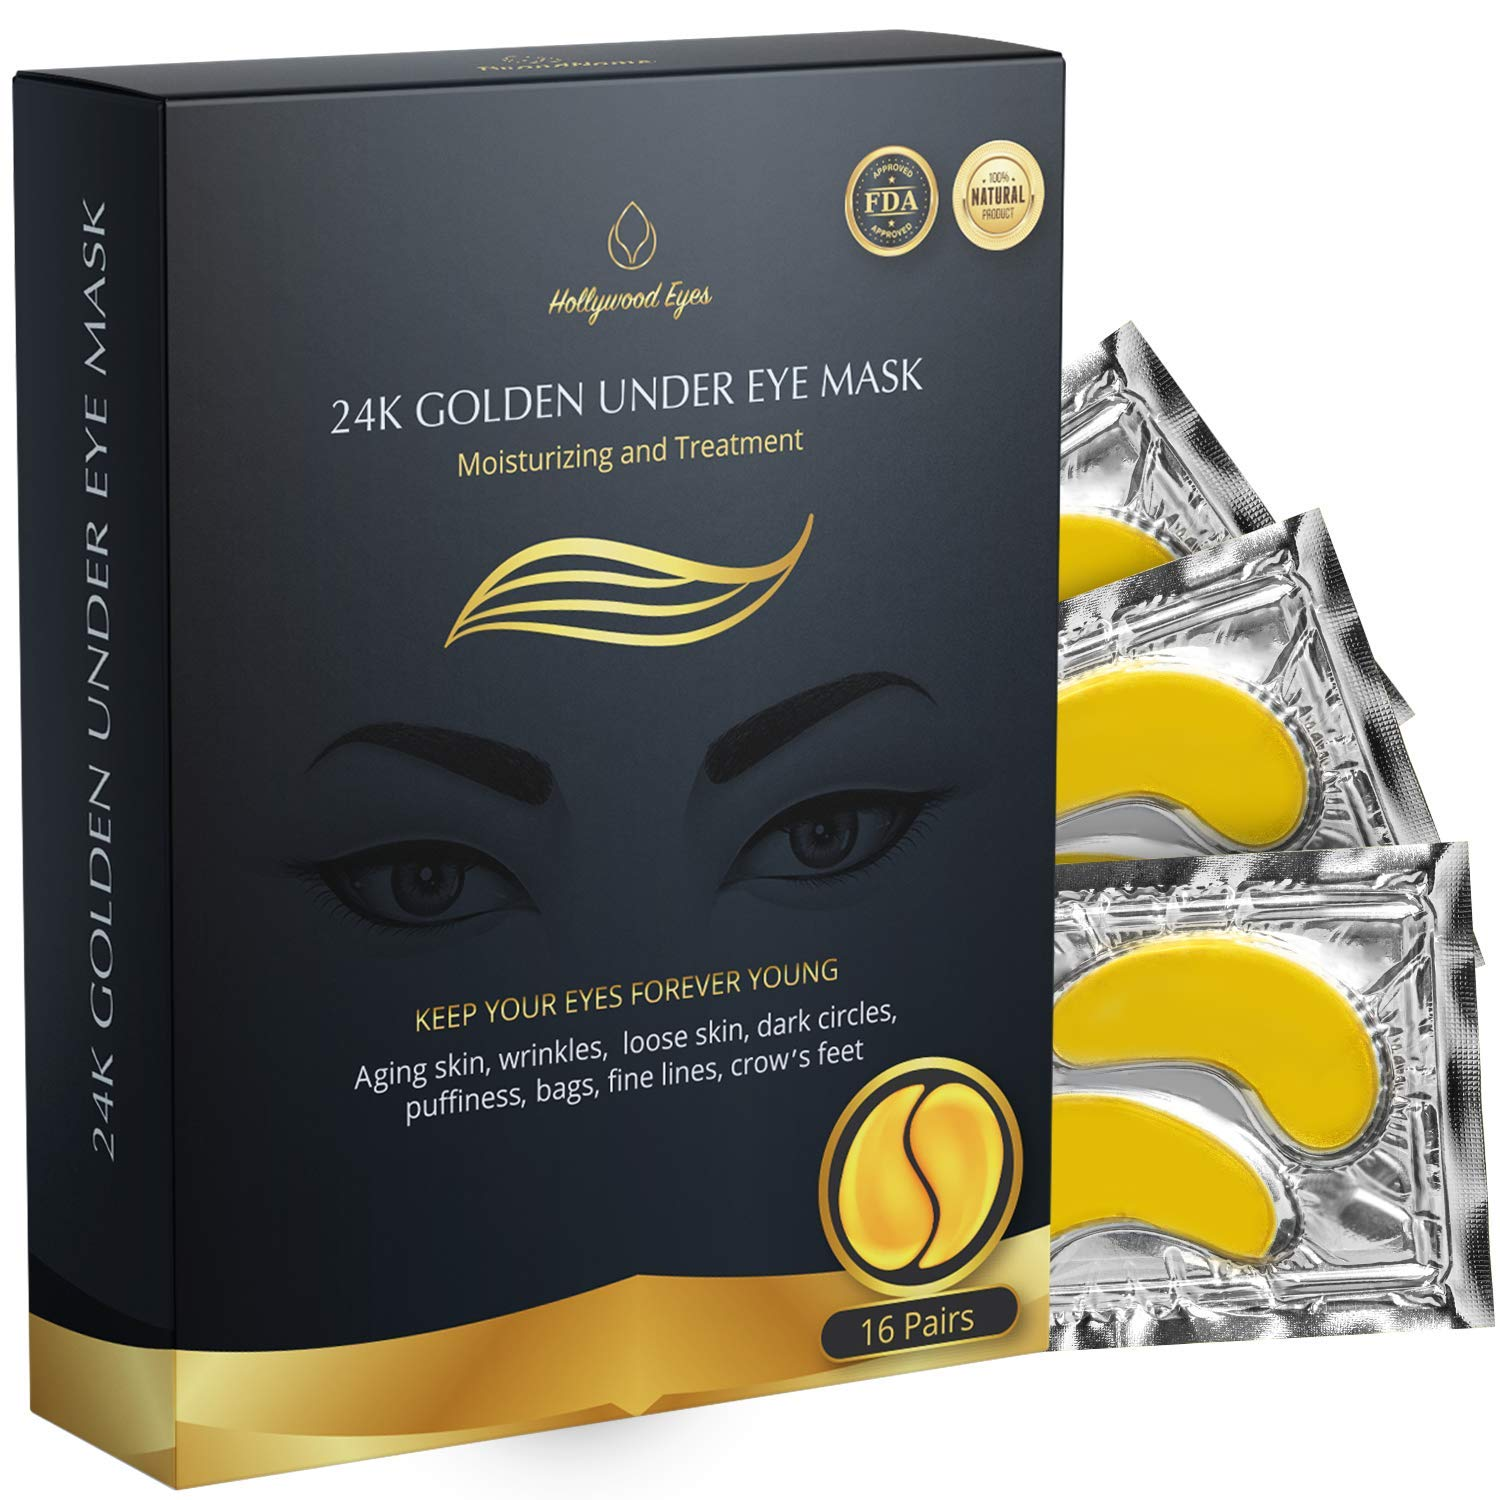 BrightJungle Under Eye Collagen Patch, 24K Gold Anti-Aging Mask, Pads for Puffy Eyes & Bags, Dark Circles and Wrinkles, with Hydrogel, Deep Moisturizing Improves elasticity, 16 Pairs : Beauty